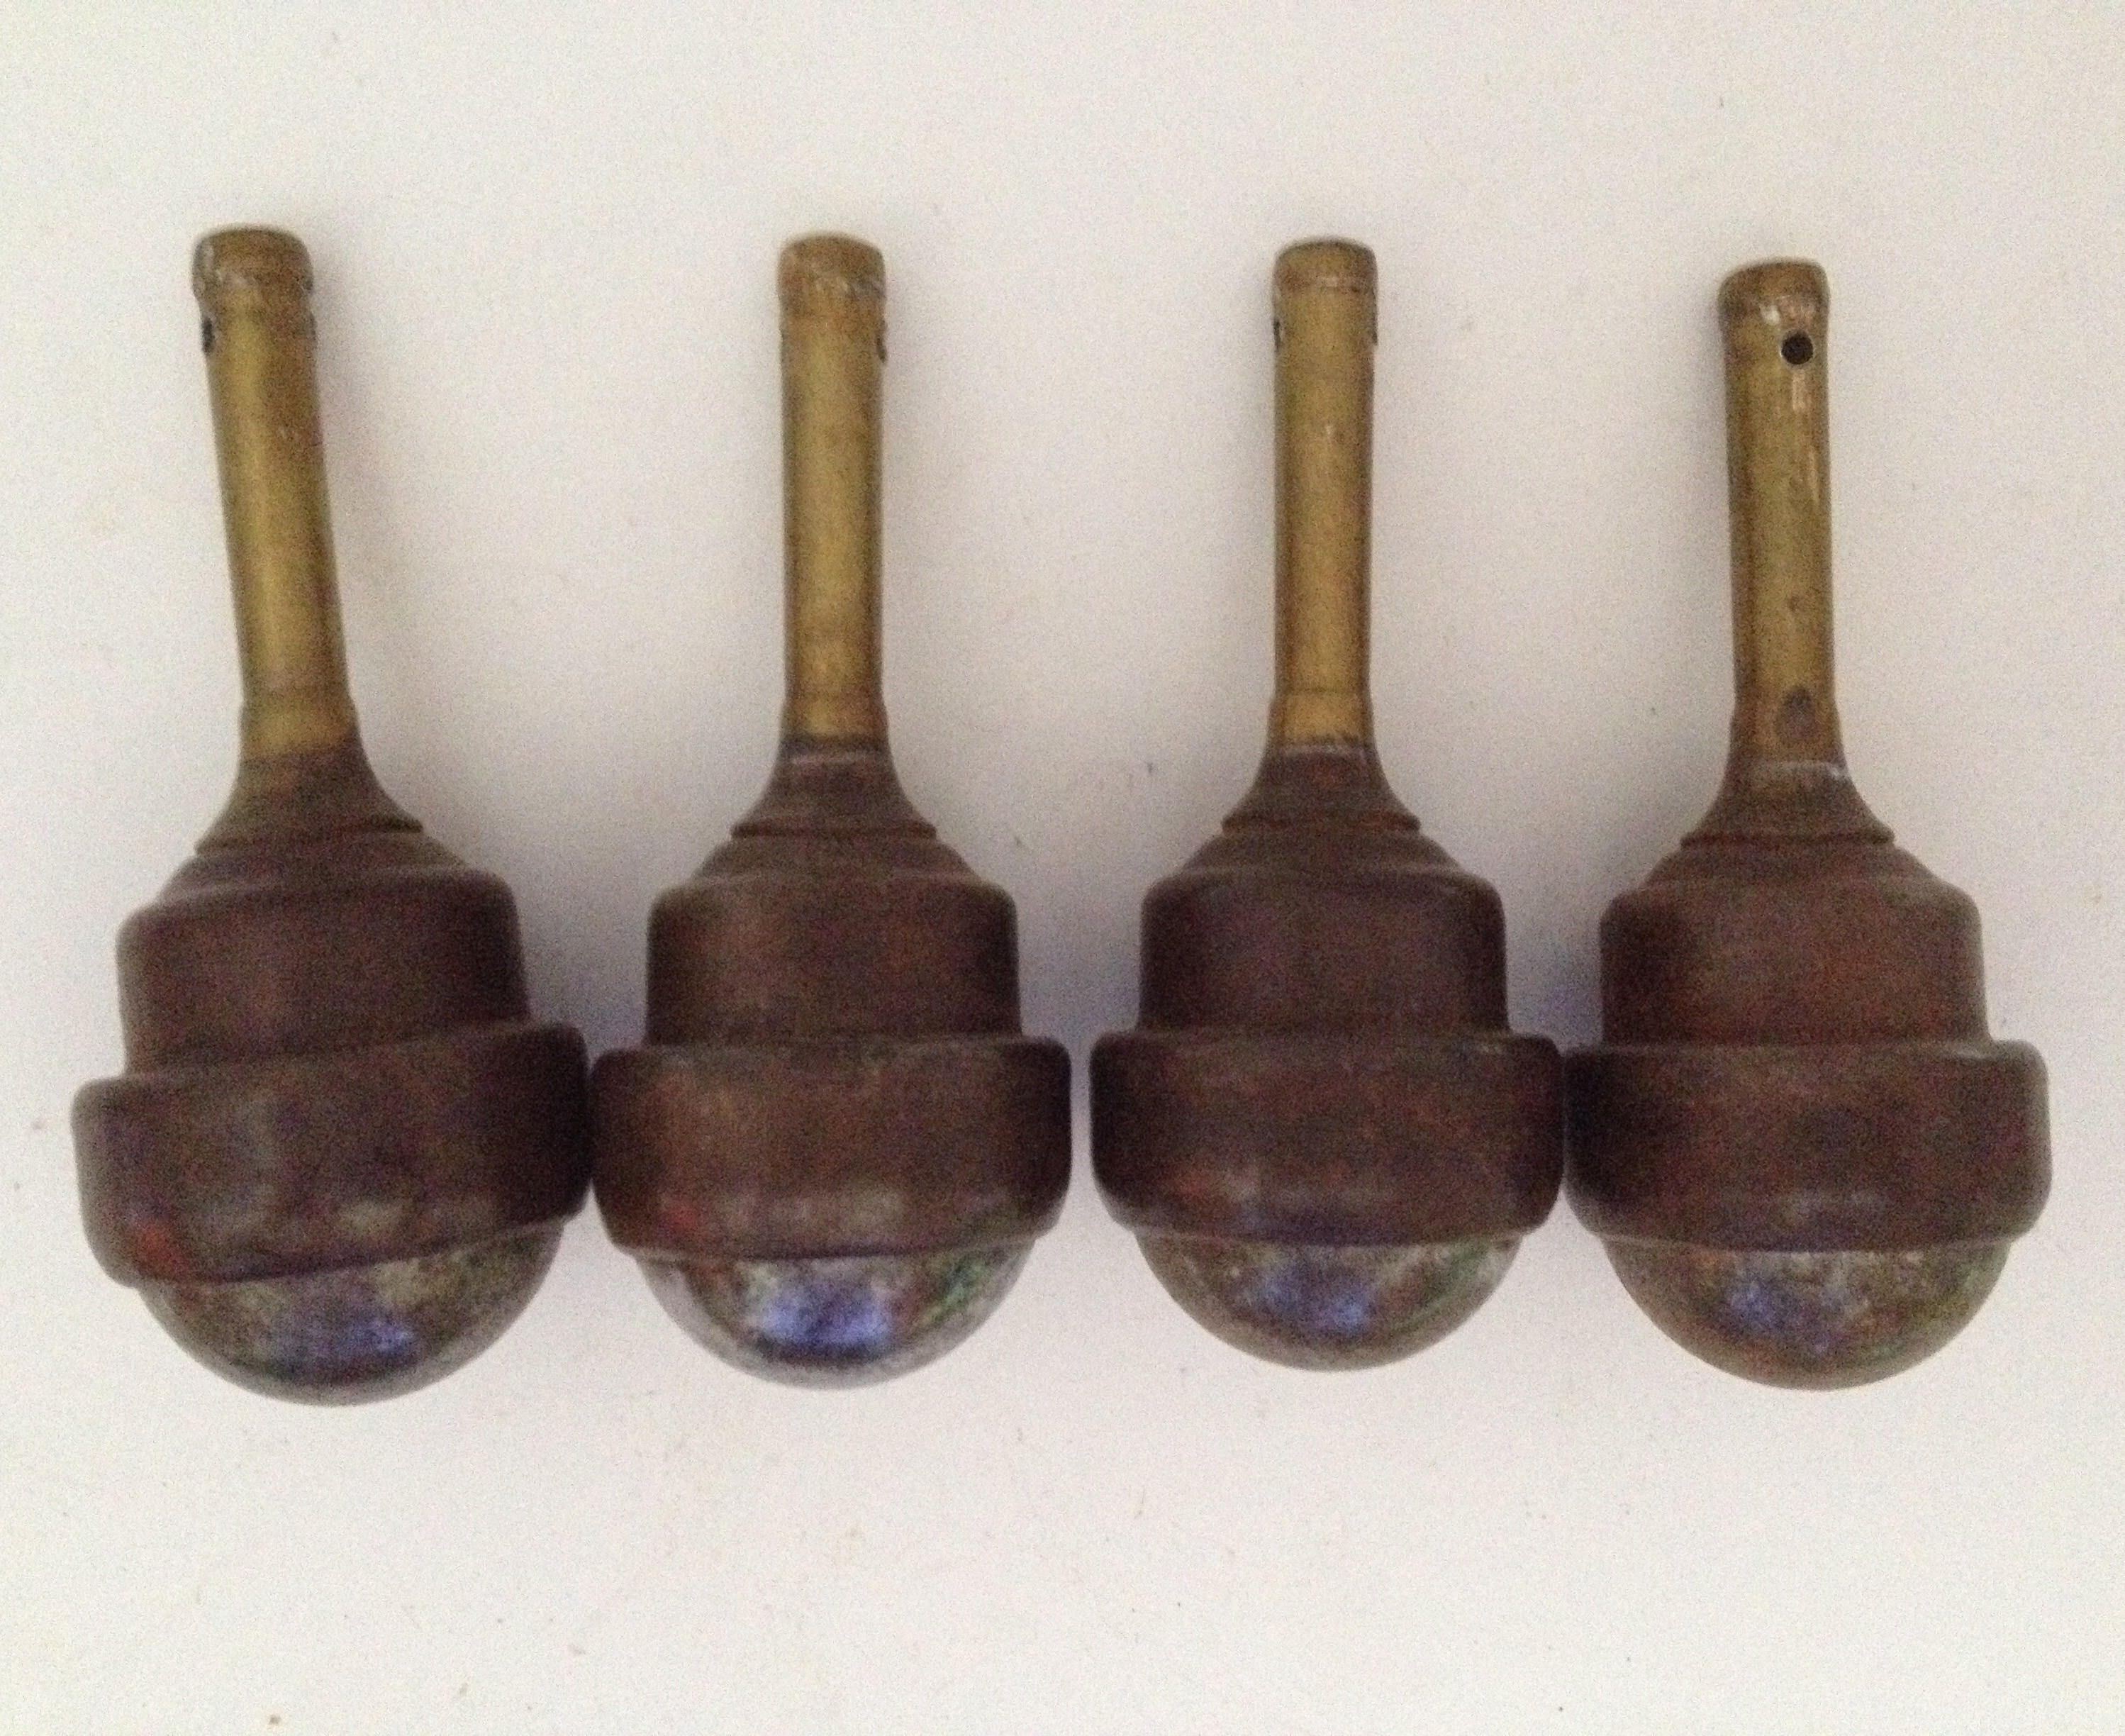 Ball Casters Vintage 1 1 2 Inch Stem Caster Wheels Set of 4